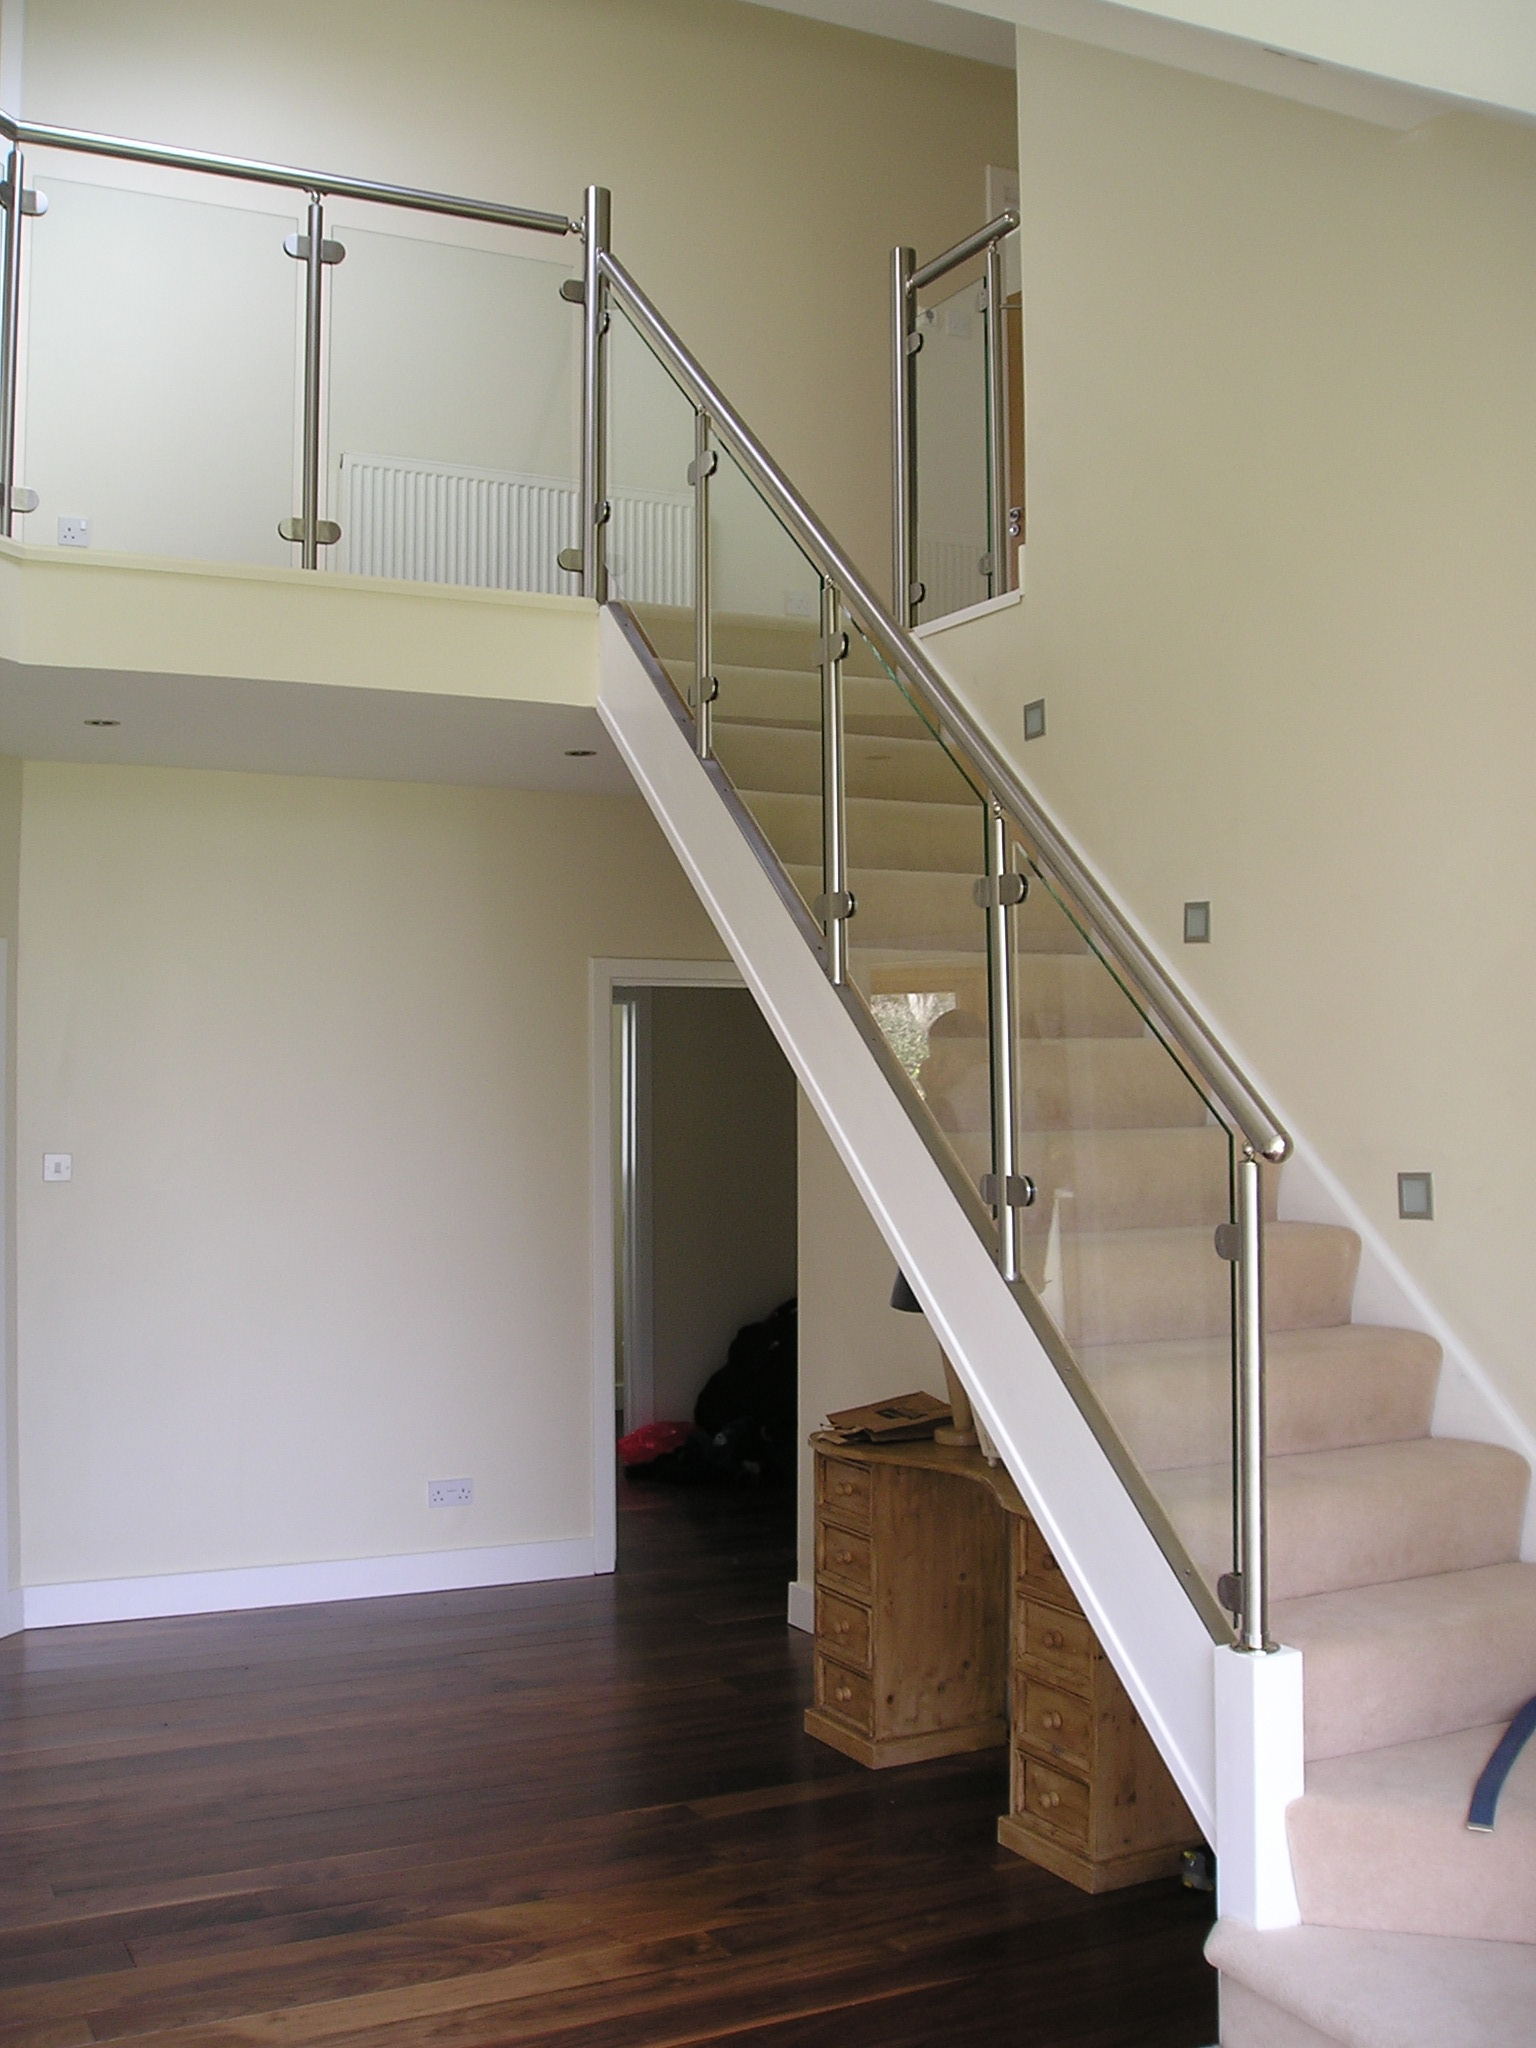 Clasac Stainless Steel Balustrades Spireco Spiral Stairs